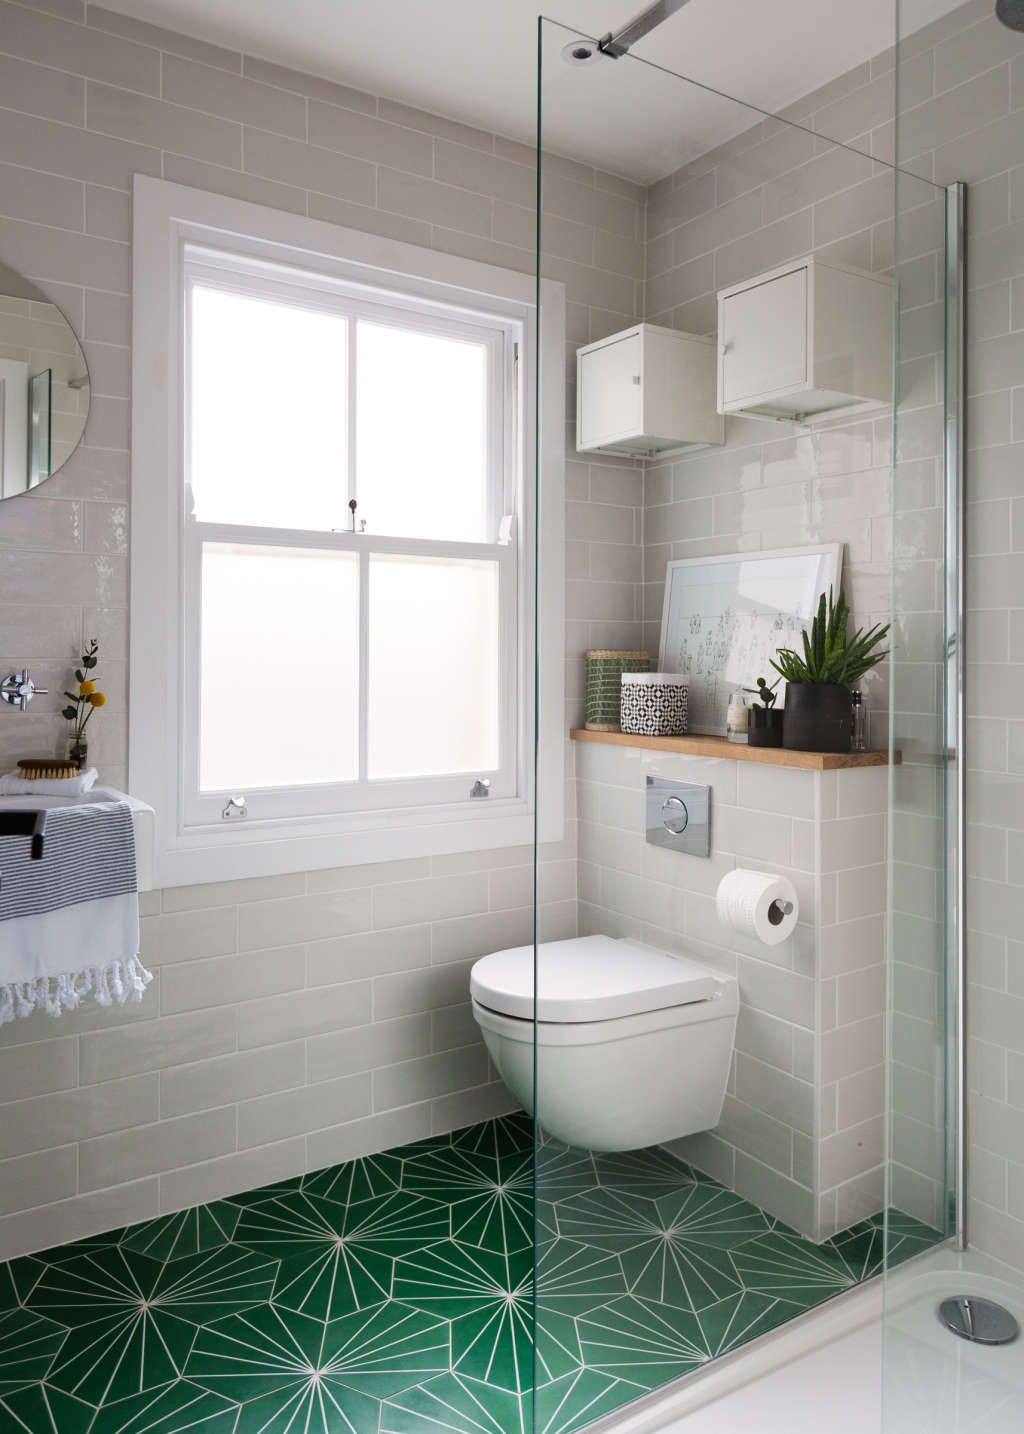 Self-Cleaning Toilets: Do They Really Work? | Apartment Therapy